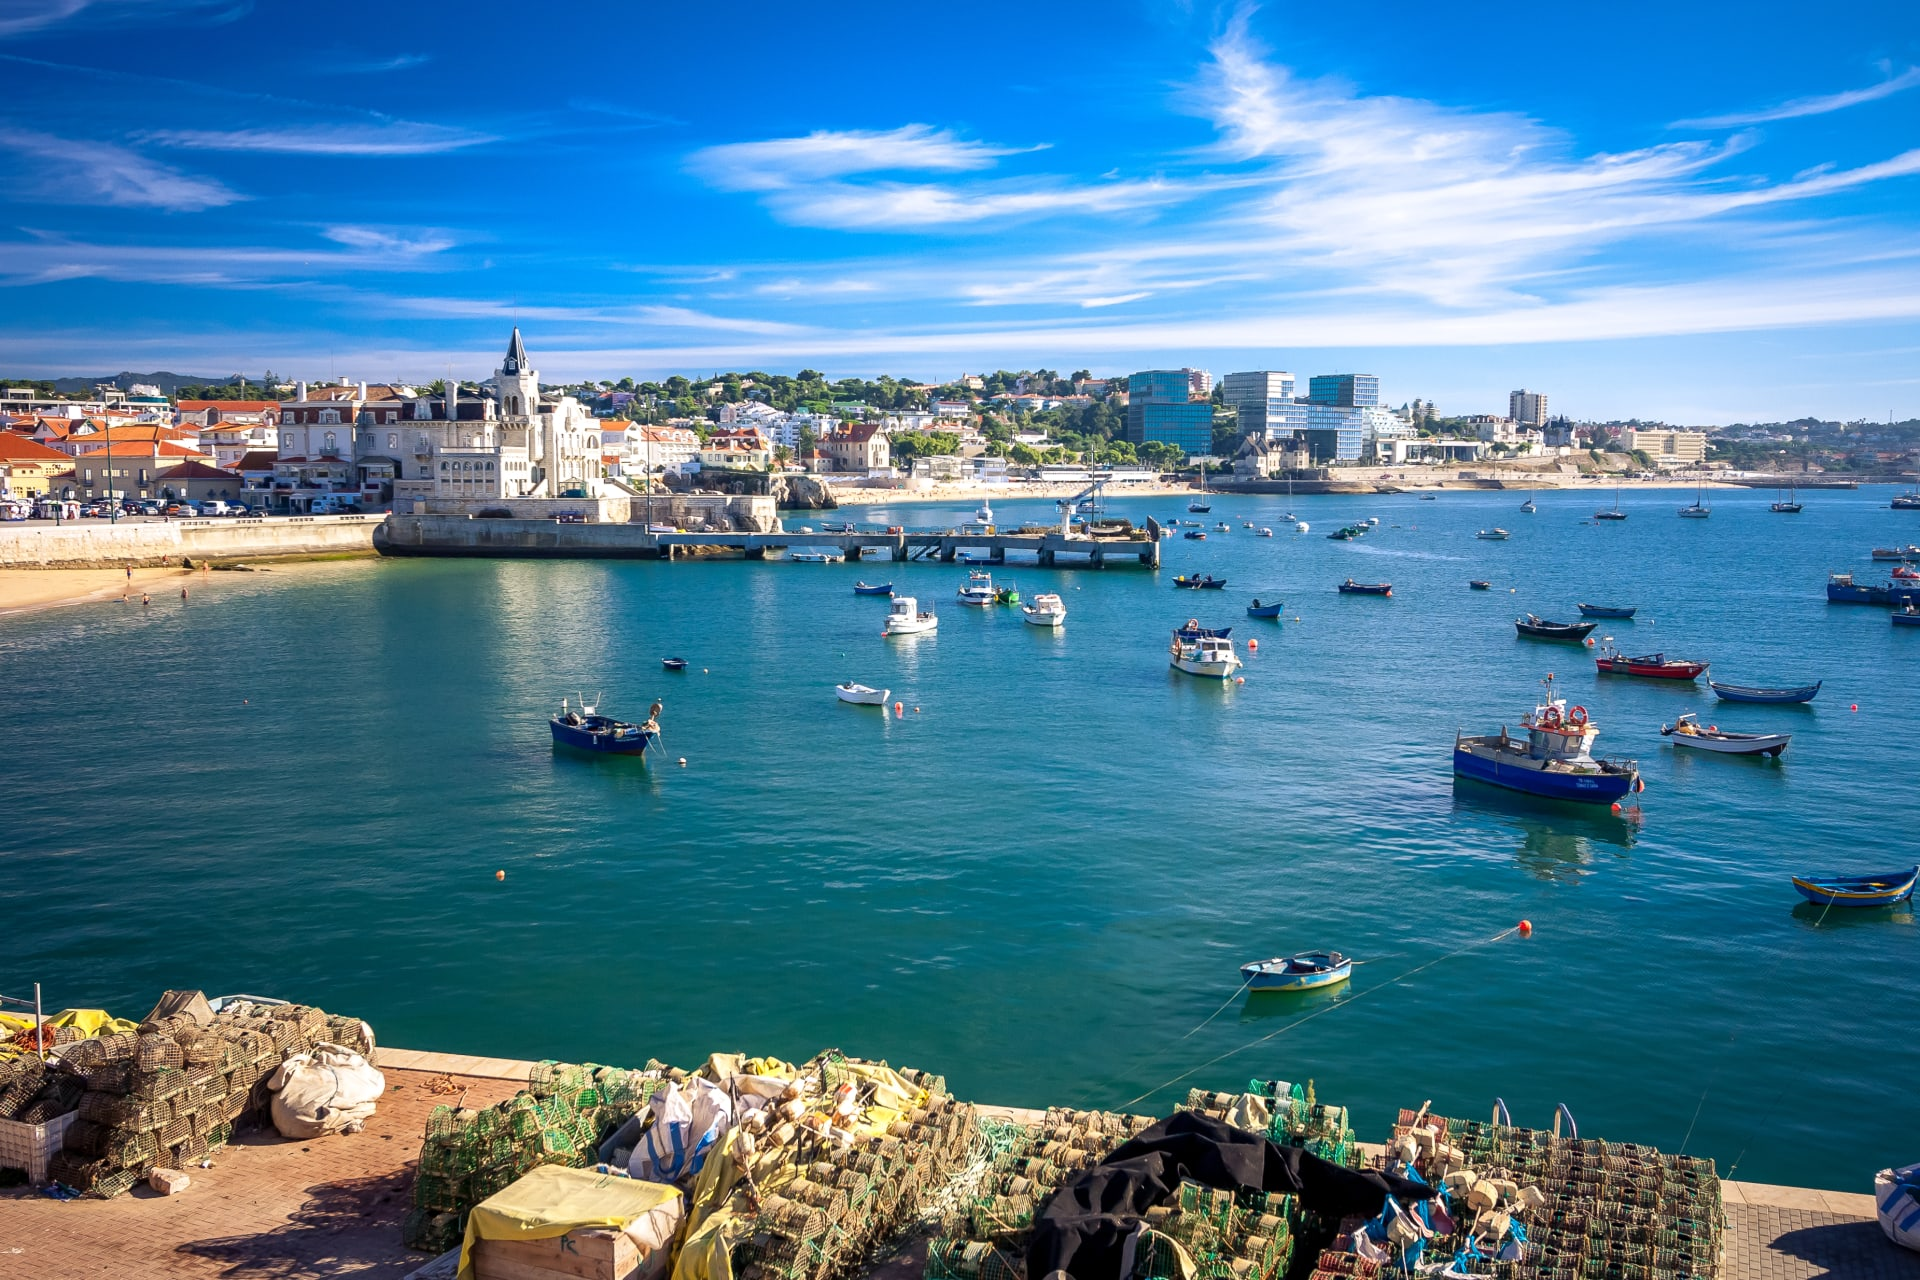 Cascais - Cascais: The Town of Fishermen and Kings